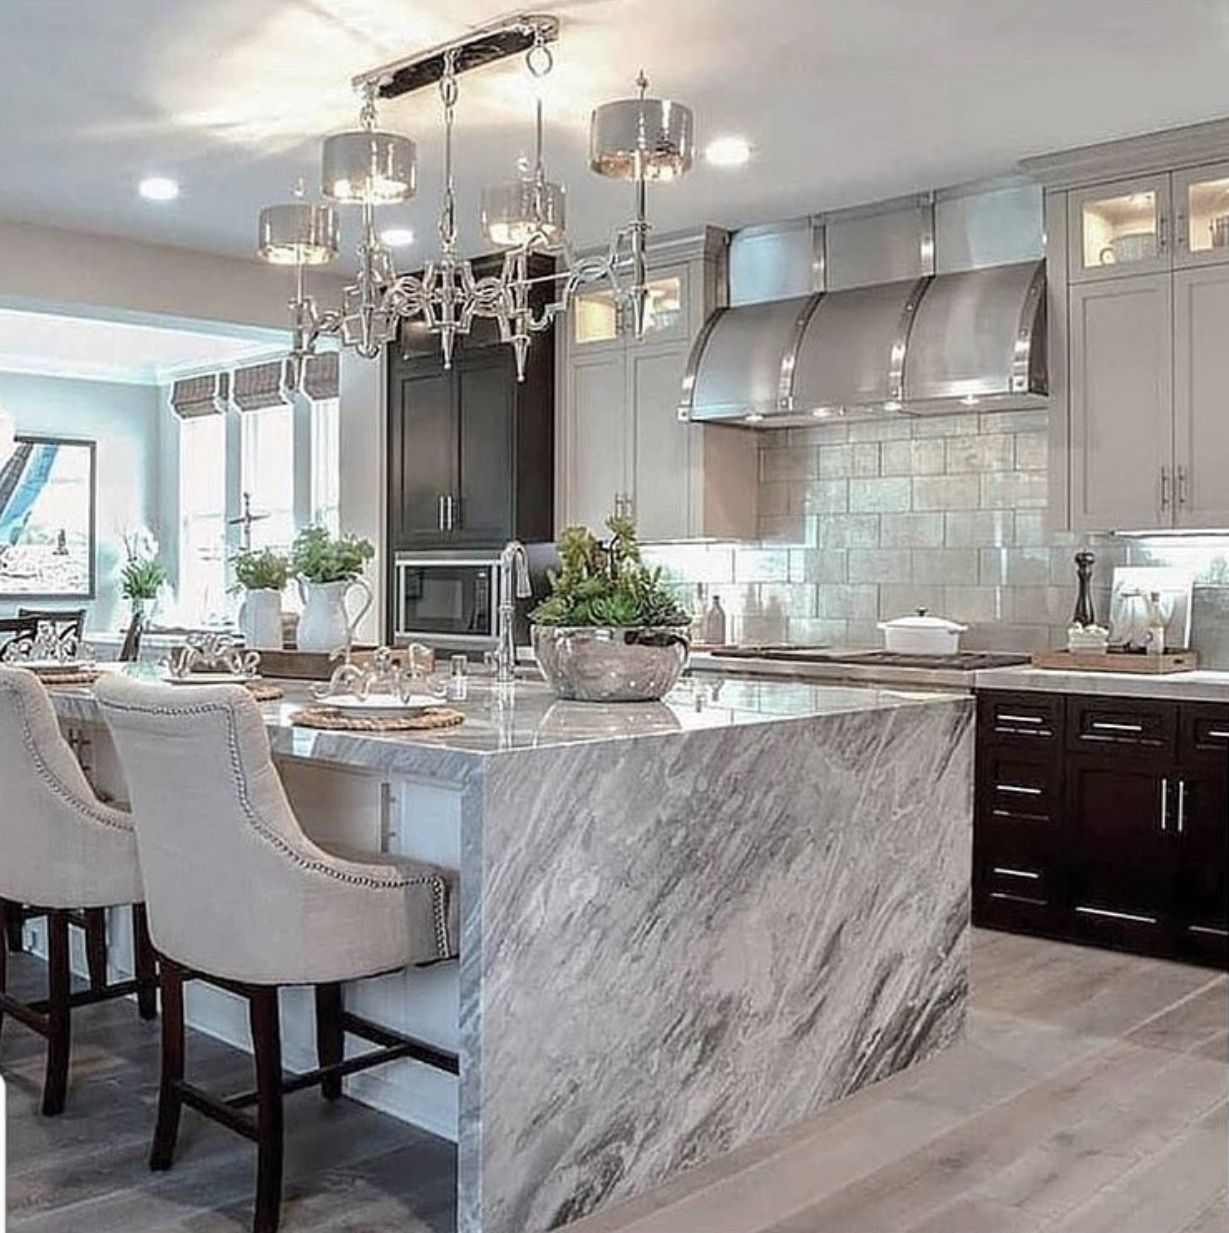 Tips For Choosing The Best Bar Stools Your Kitchen Chaylor Mads Dream Kitchens Design Luxury Modern Island